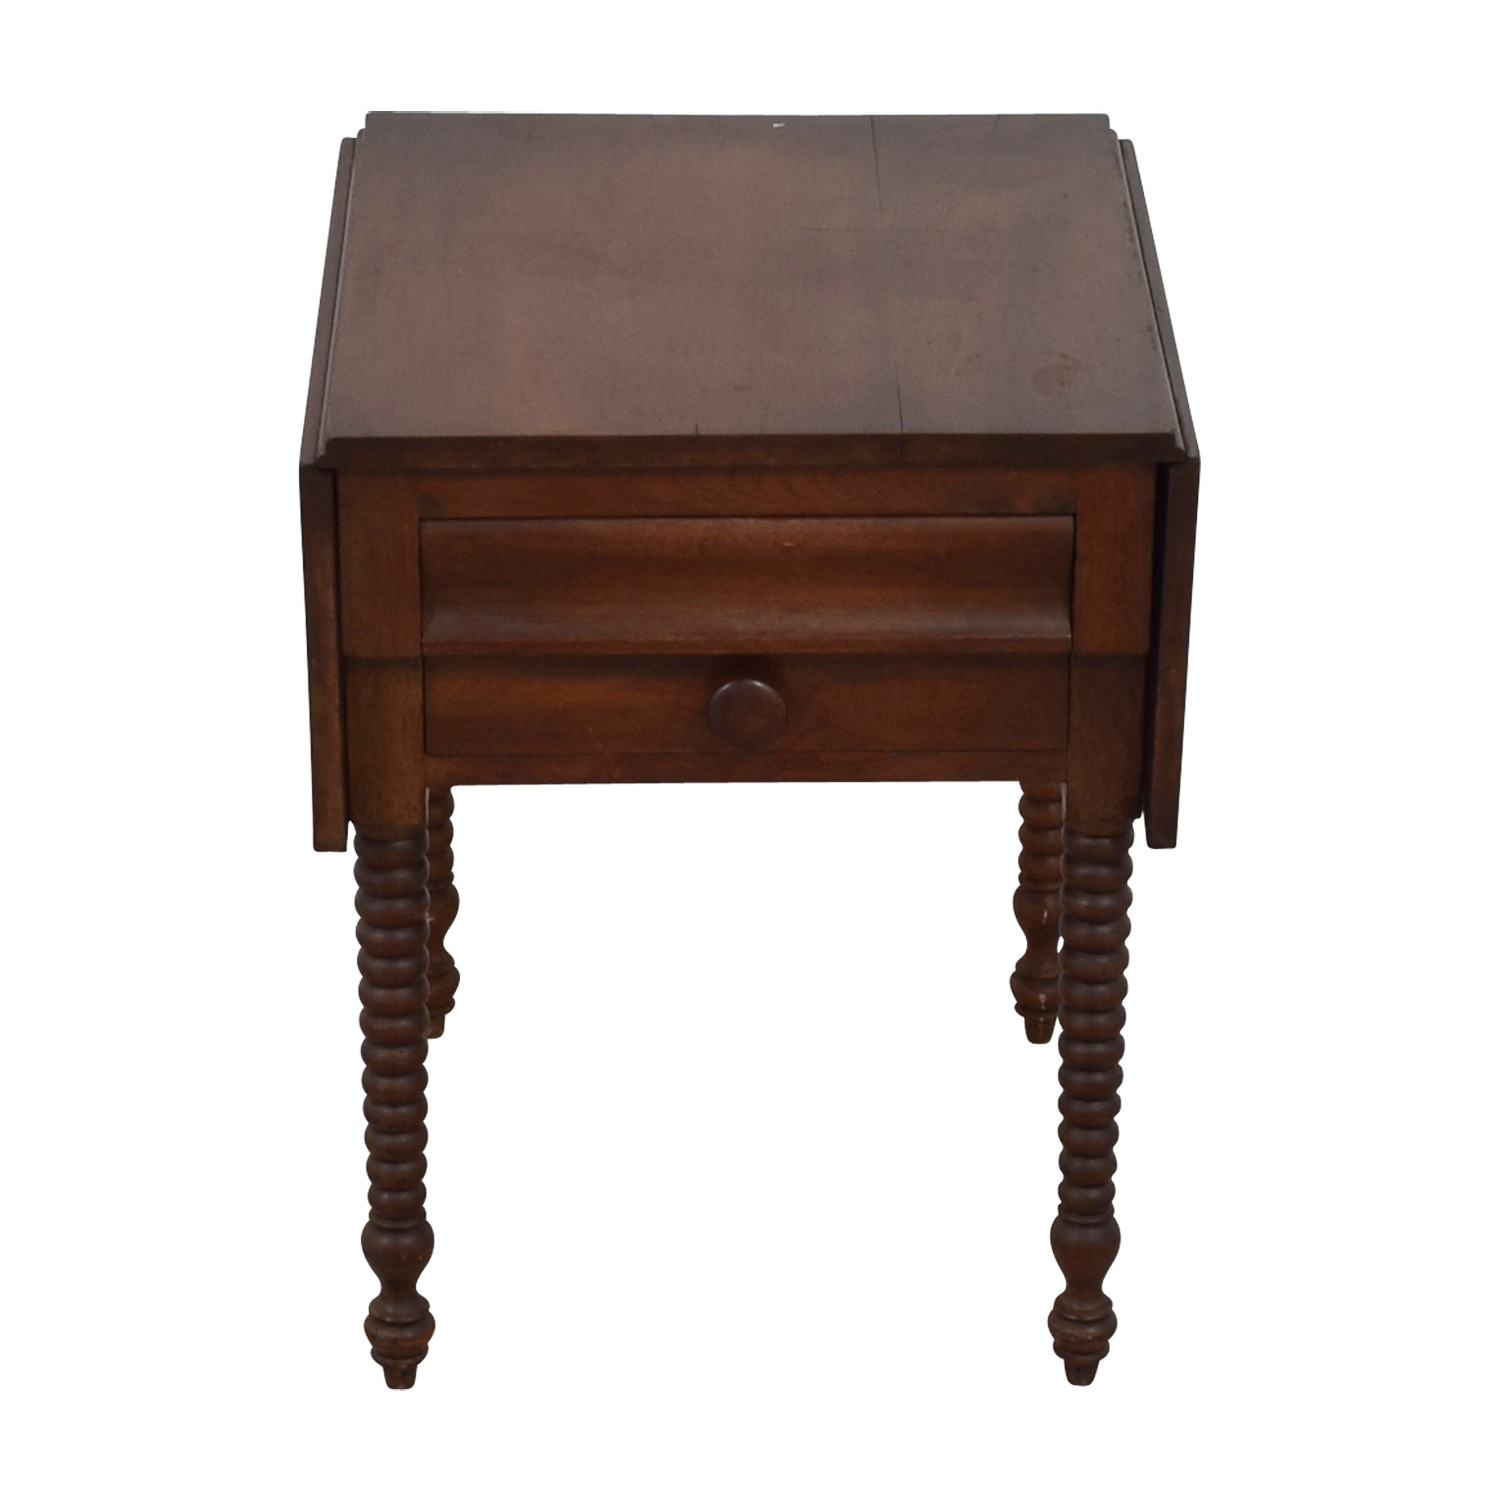 Wood Drop-Leaf Single Drawer Side Table / End Tables